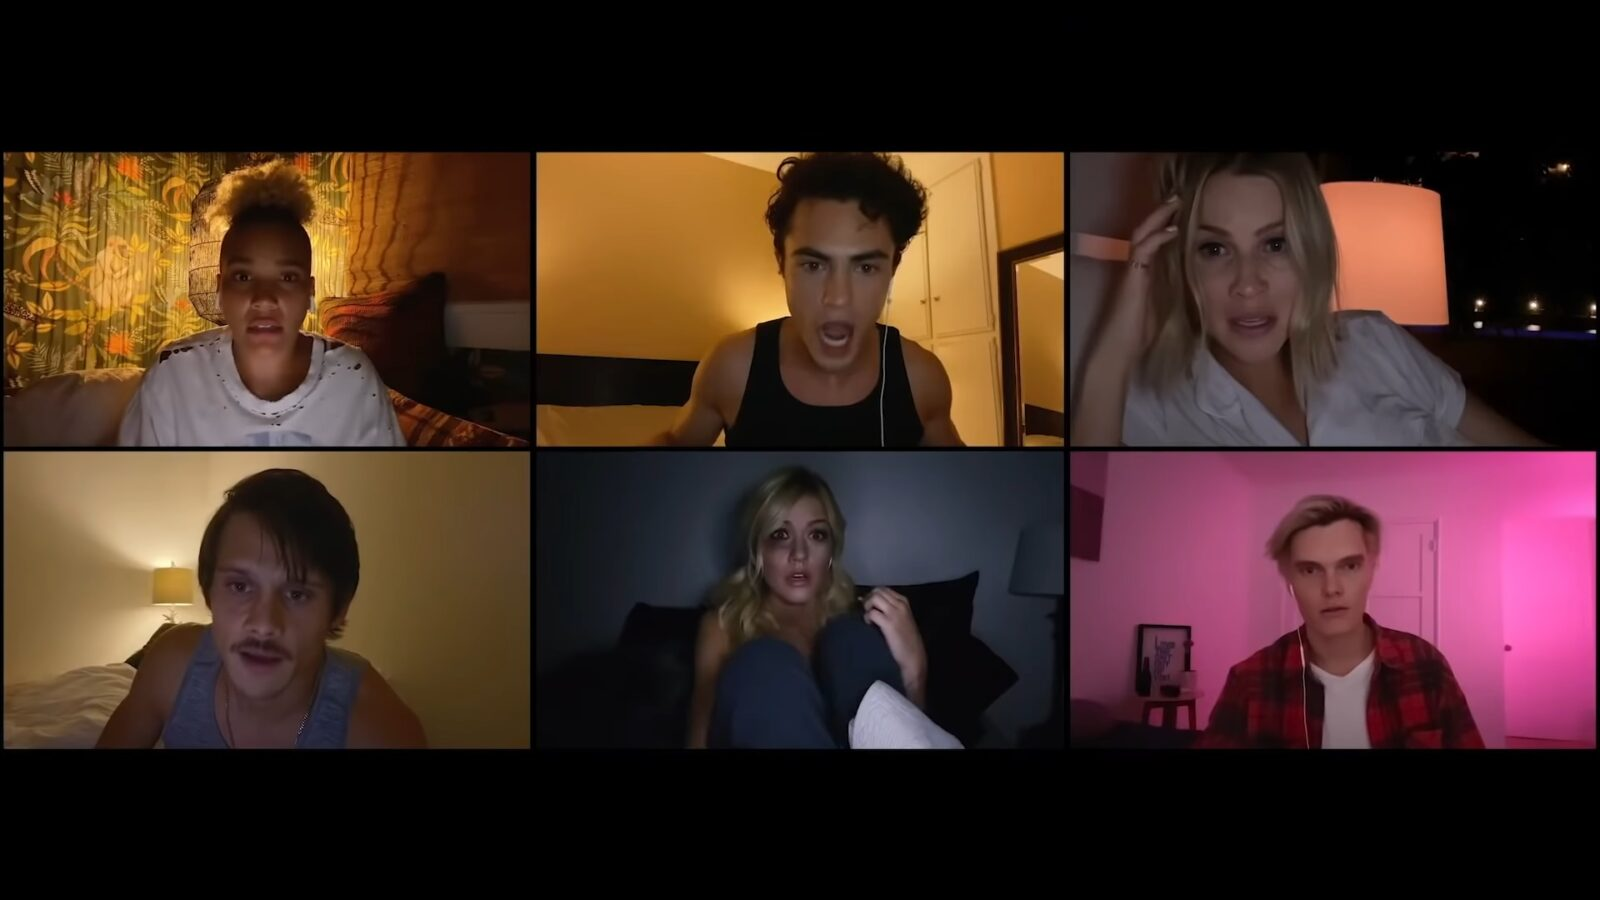 The cast of Untitled Horror Movie